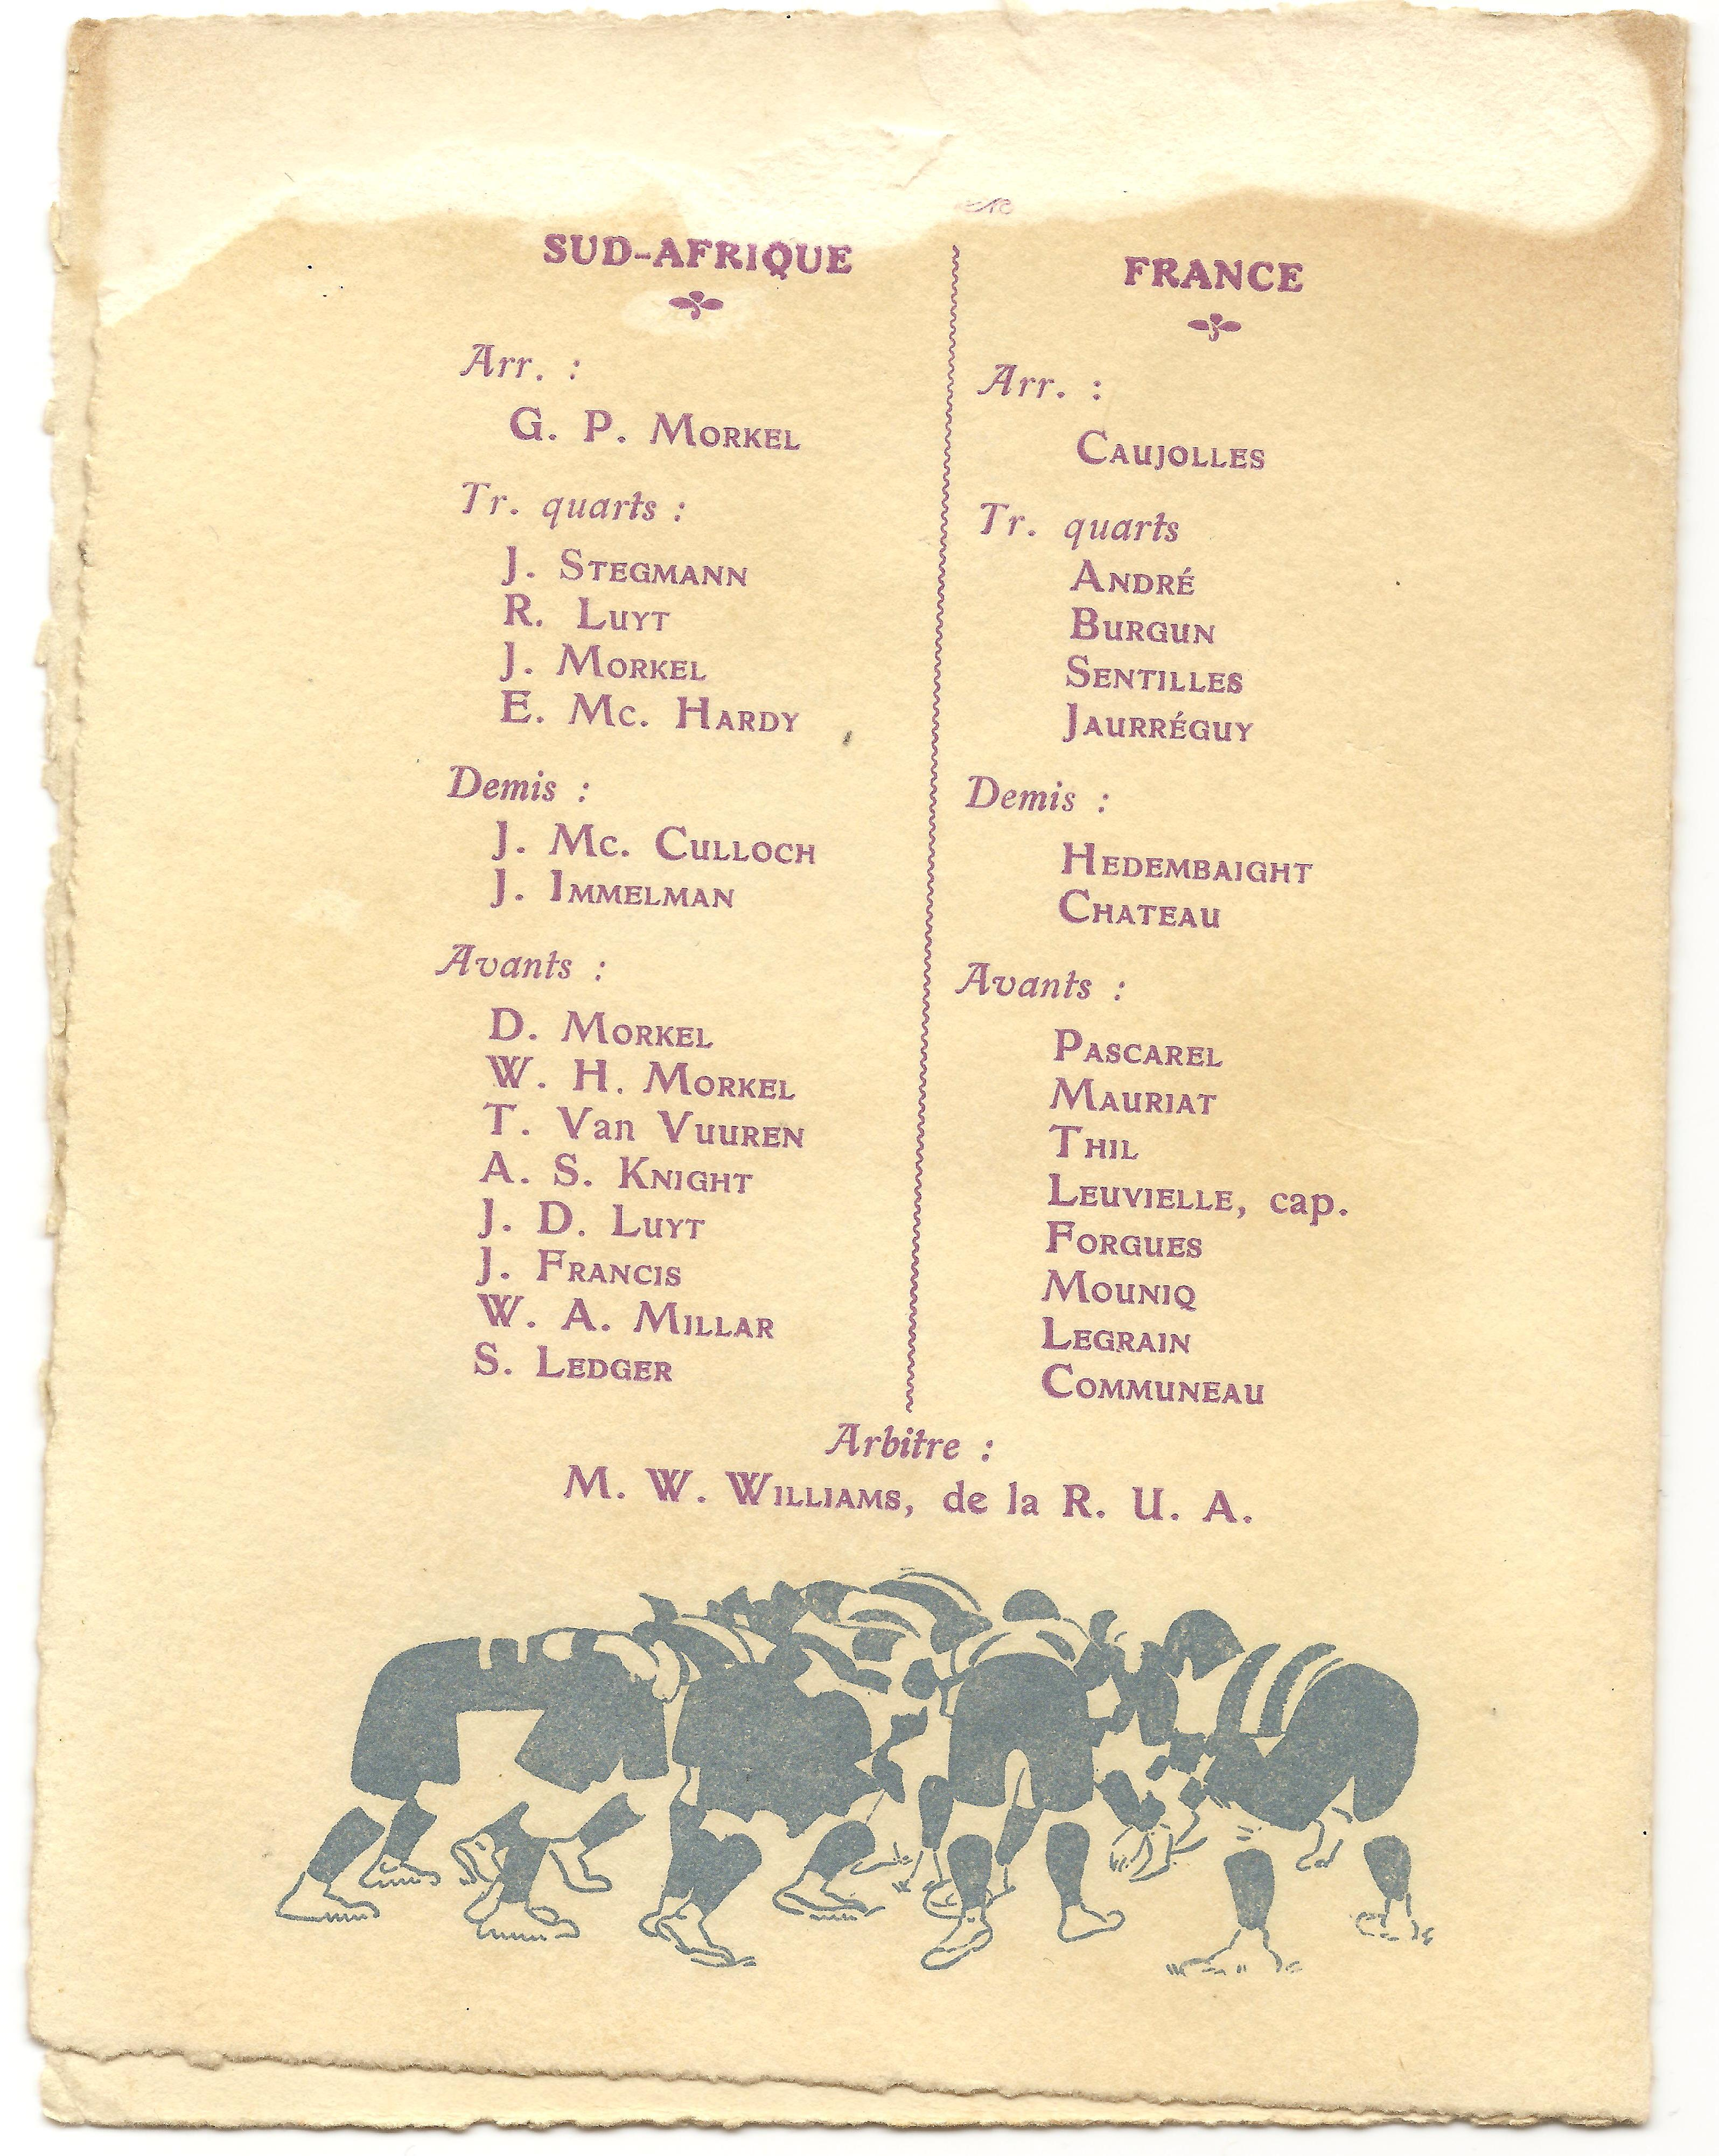 1913 France v South Africa - Rugby Memorabilia Society (3)